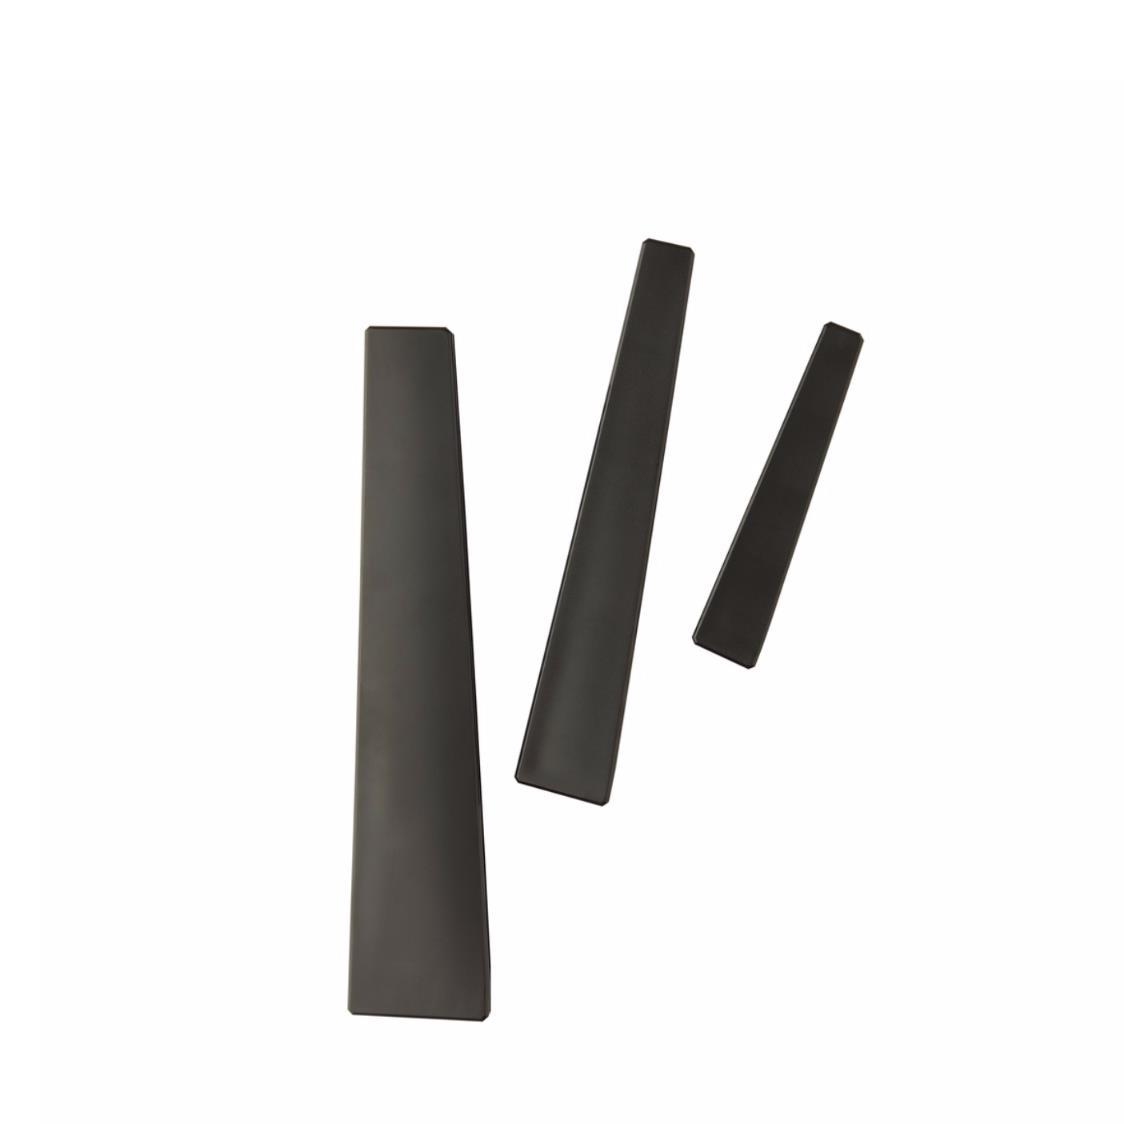 Set of 3 Blade Covers